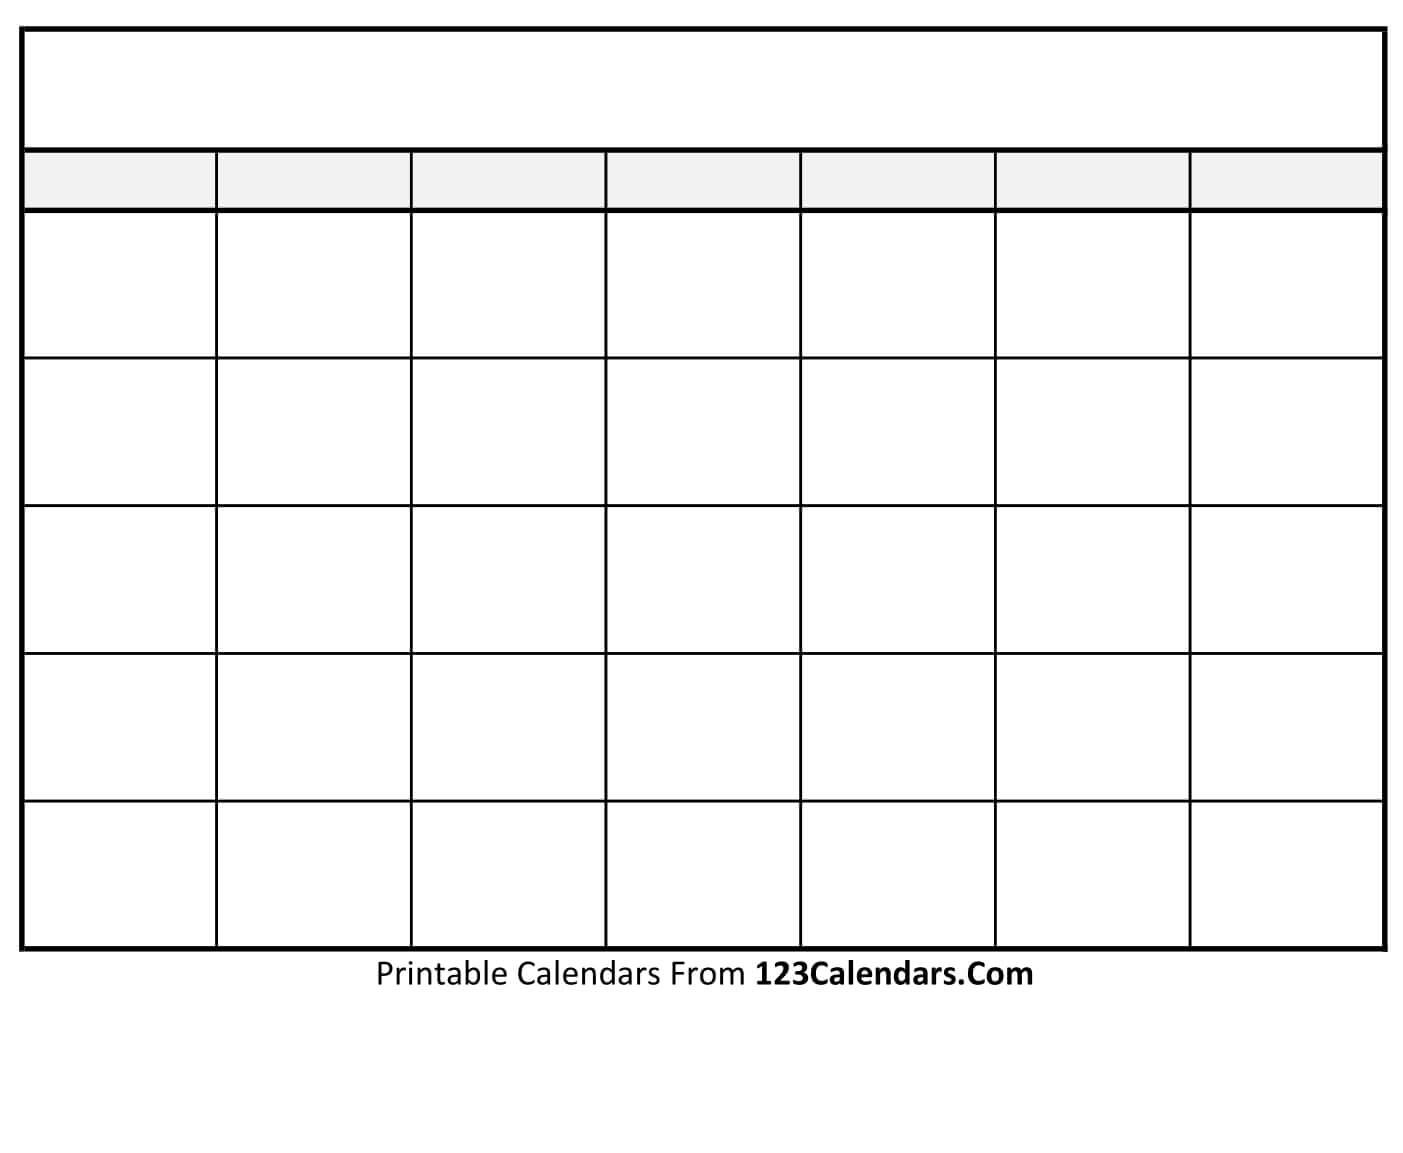 Fill In Printable Calendar Templates | Calendar Template regarding Calendar To Fill In